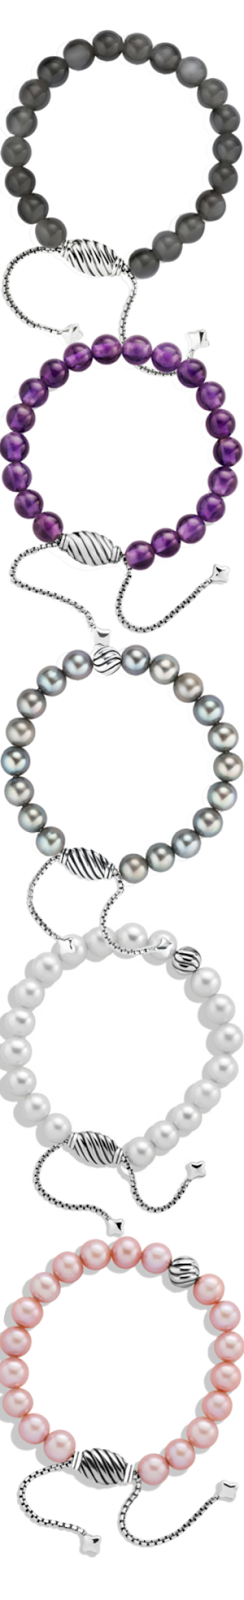 David Yurman Spiritual Beads Assorted Bracelets